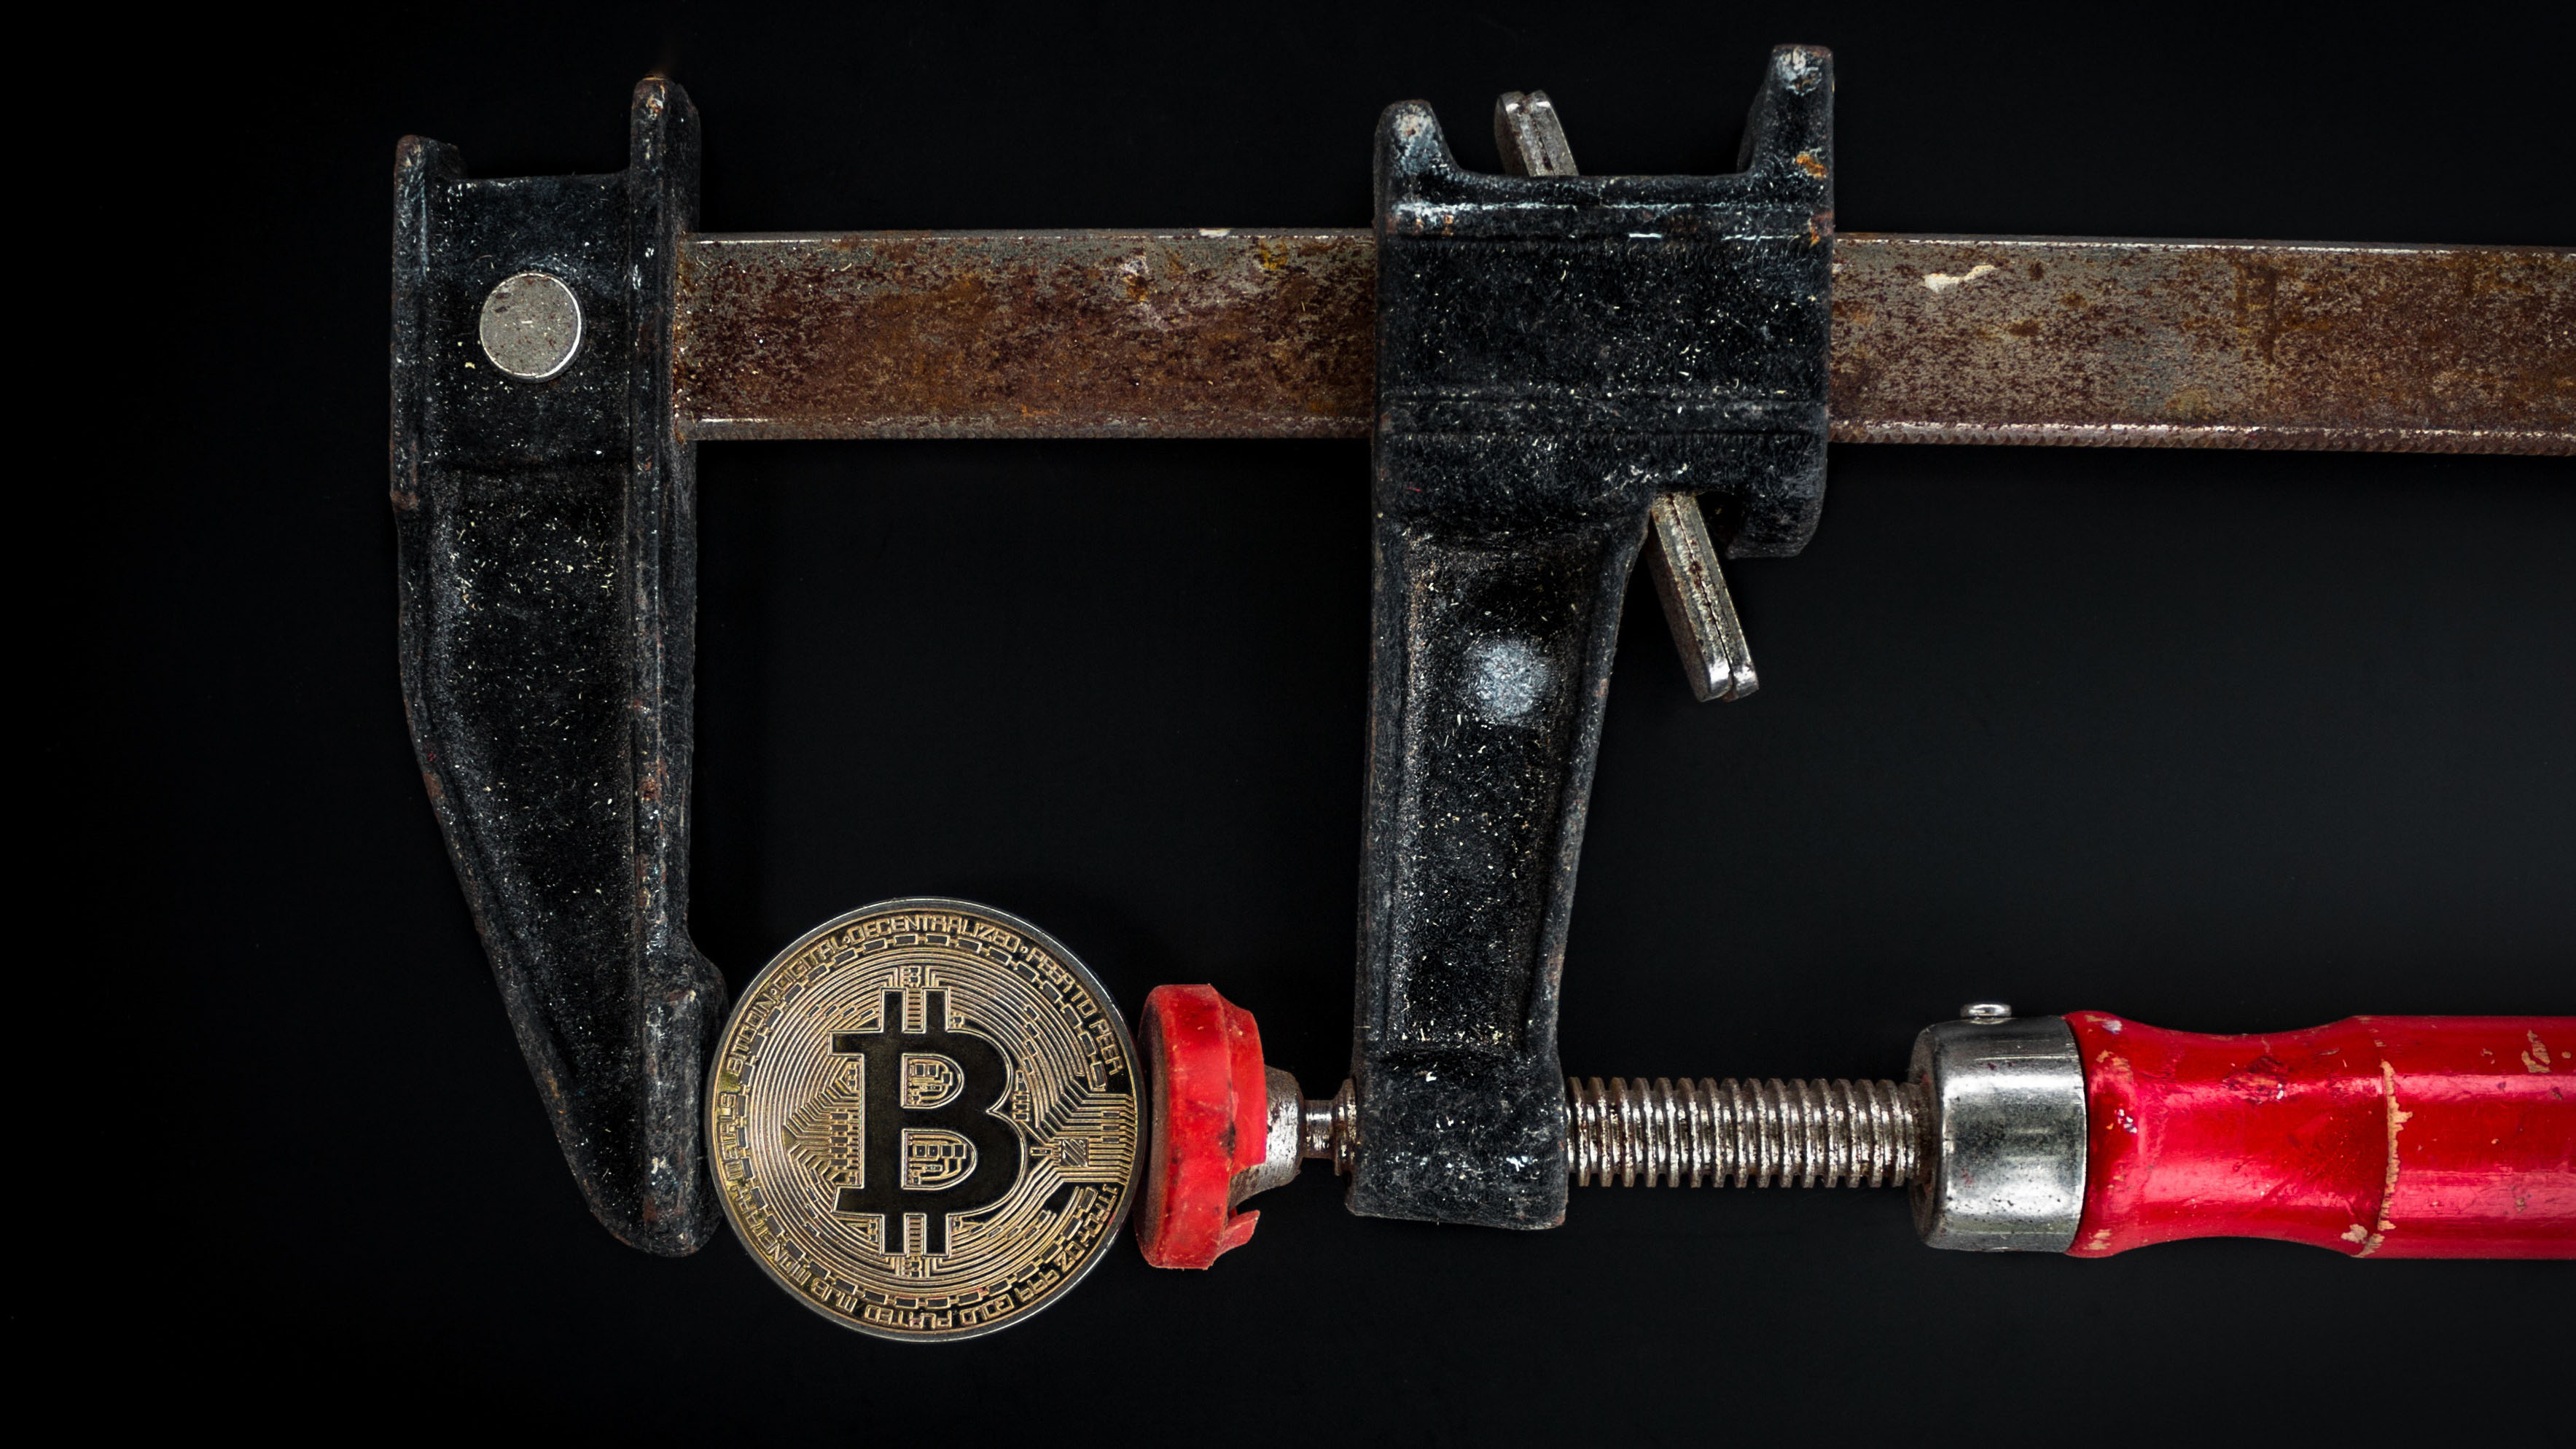 A coin with bitcoin symbol held in a vice.